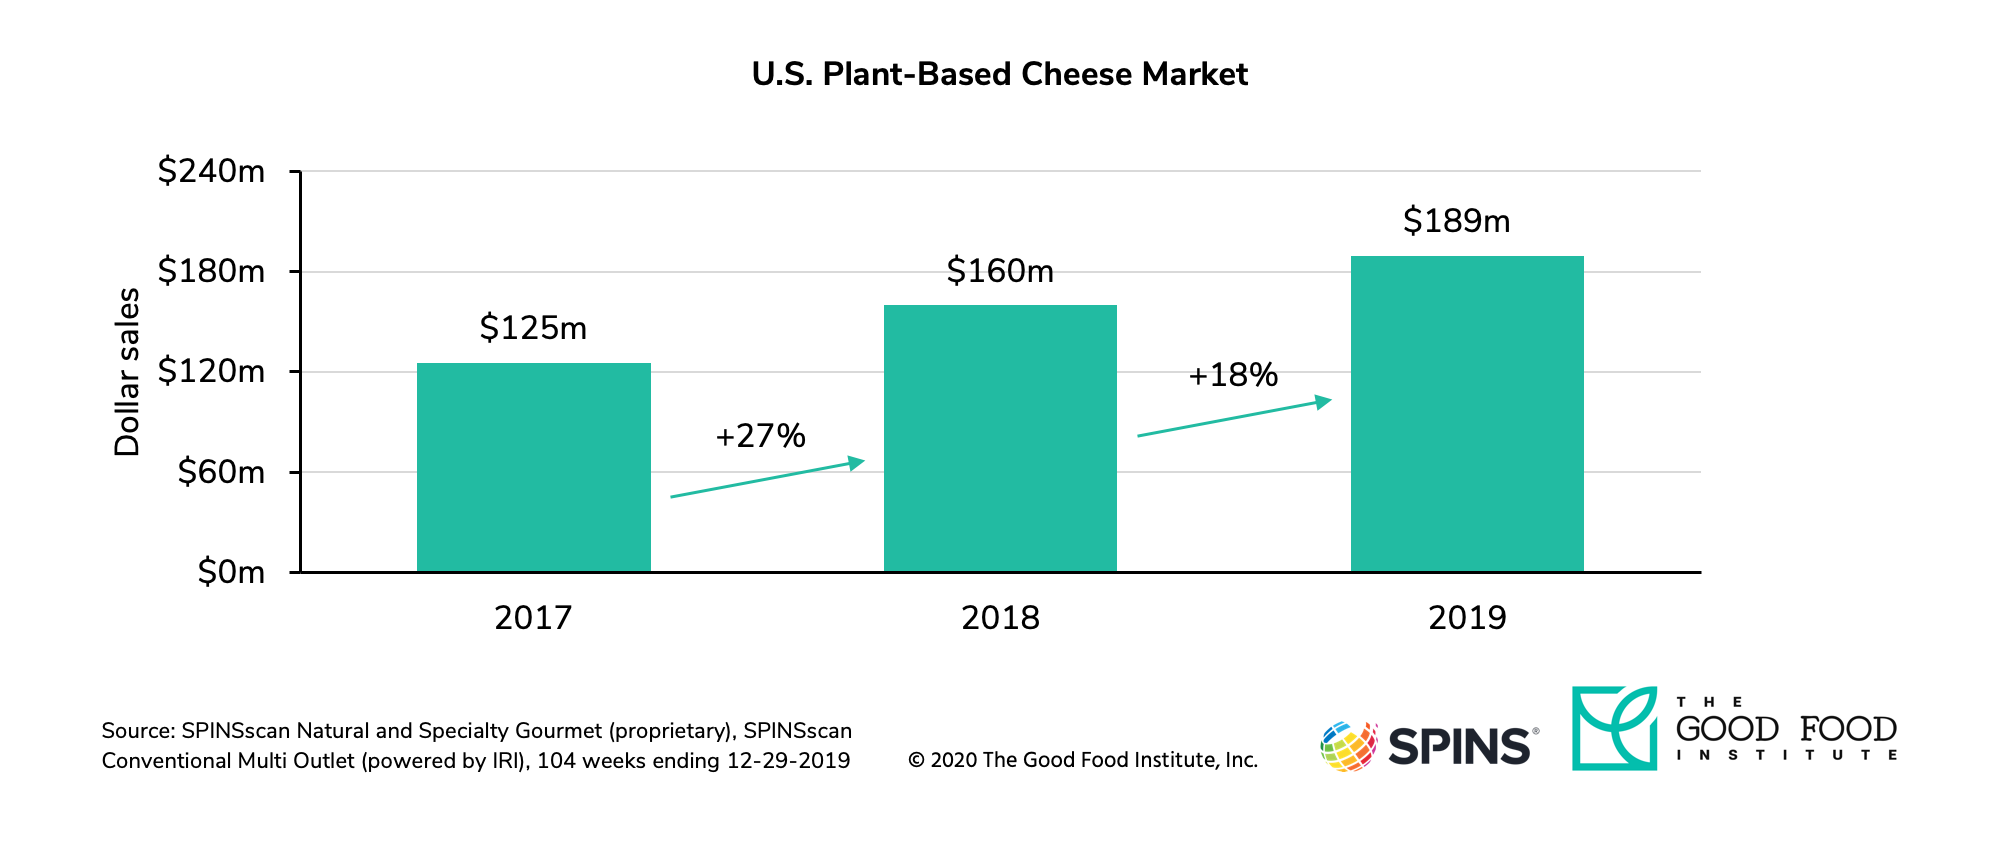 U.S. retail sales of dairy-free cheese reached $189 million in 2019.